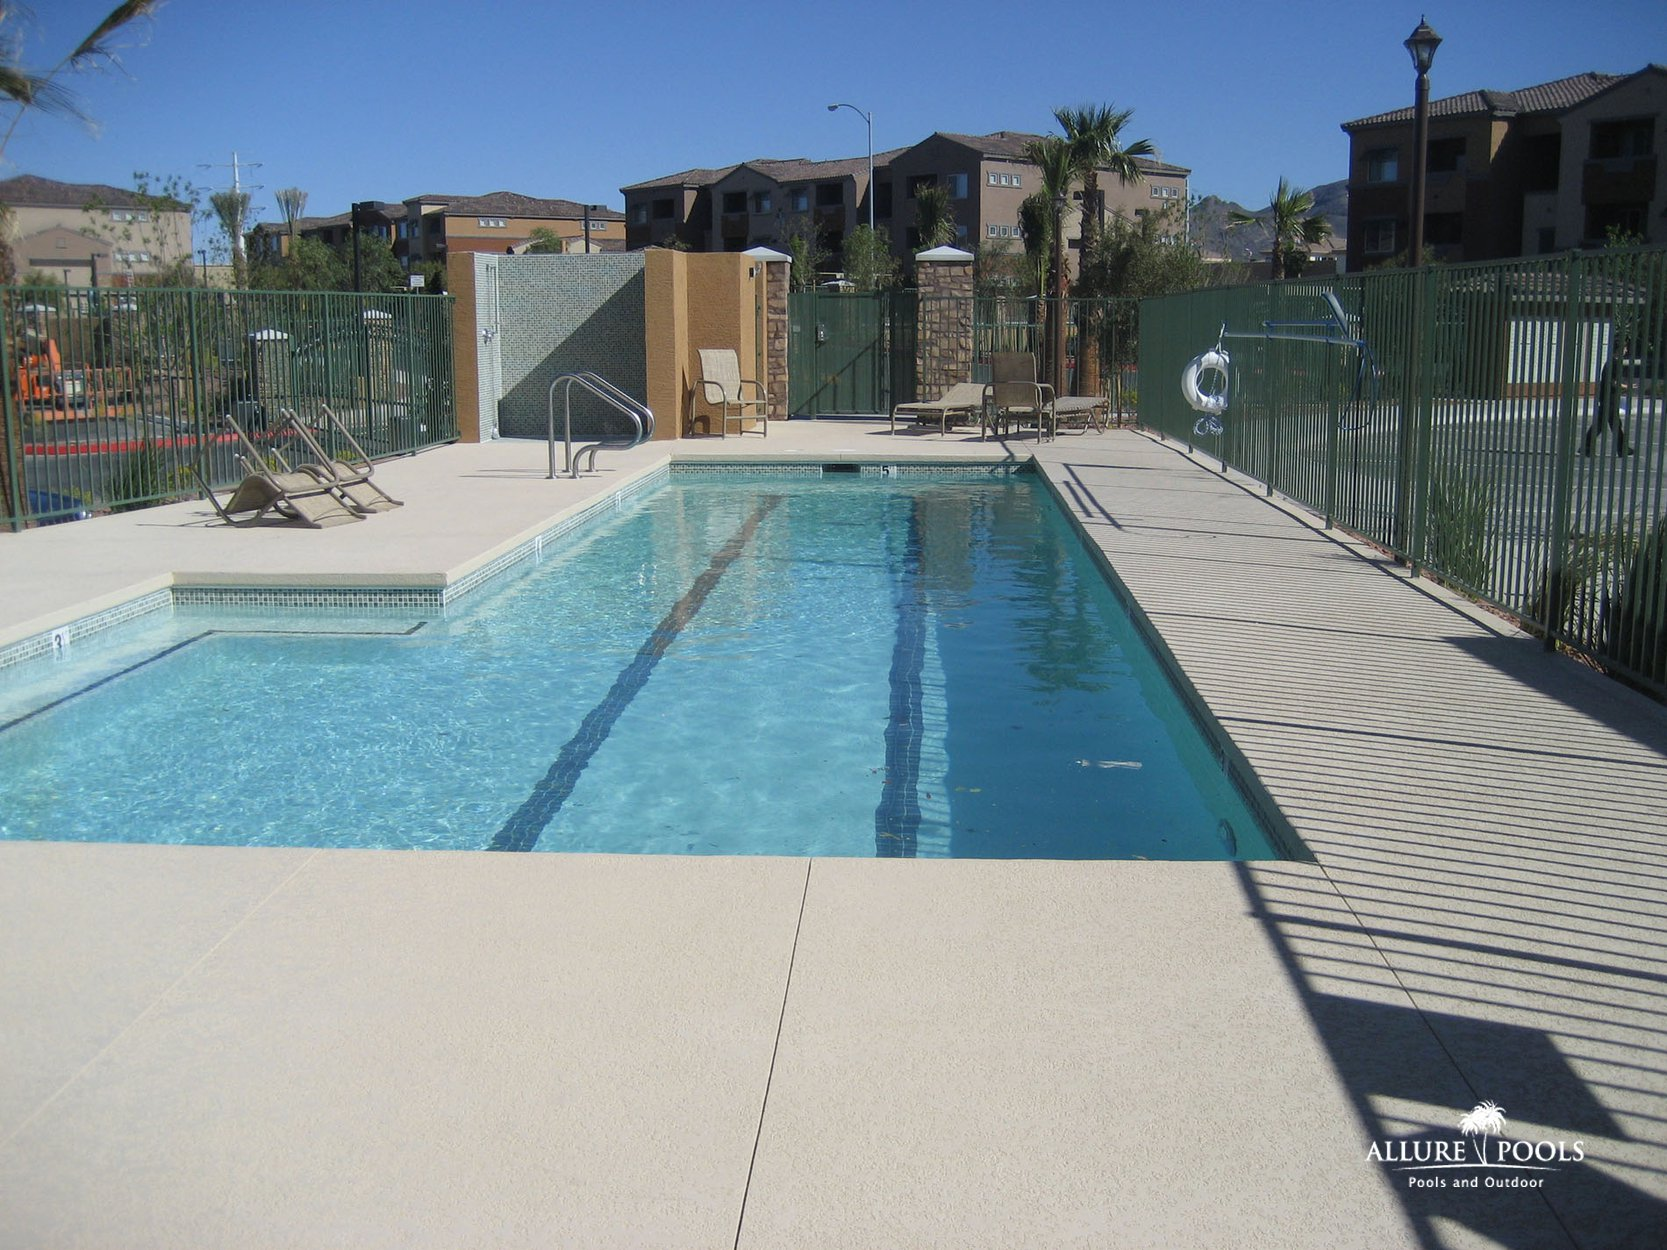 Commercial Pool Furniture Houston Patio Umbrellas Houston Outdoor Site Furniture The Pool